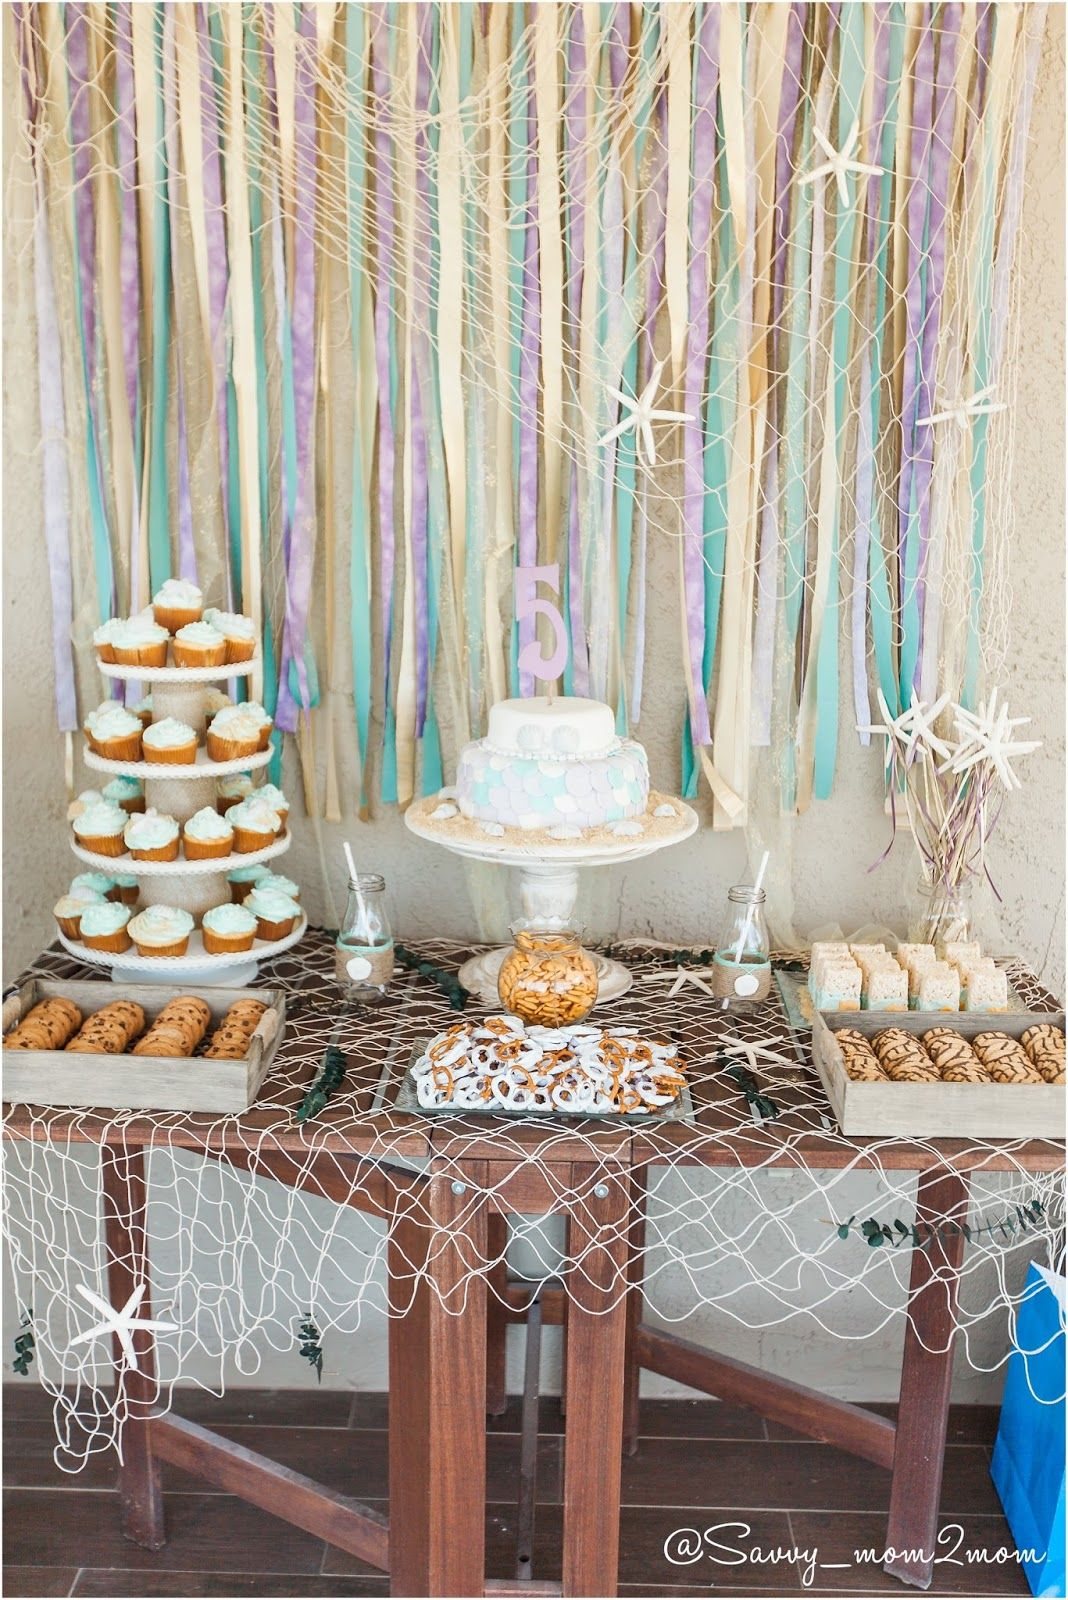 craft ideas homemade bridal shower decoration%0A   of    photos Under the sea  mermaid party ideas   pictures   diy crafts  and more  CoEd under the sea party vintage under the sea decor